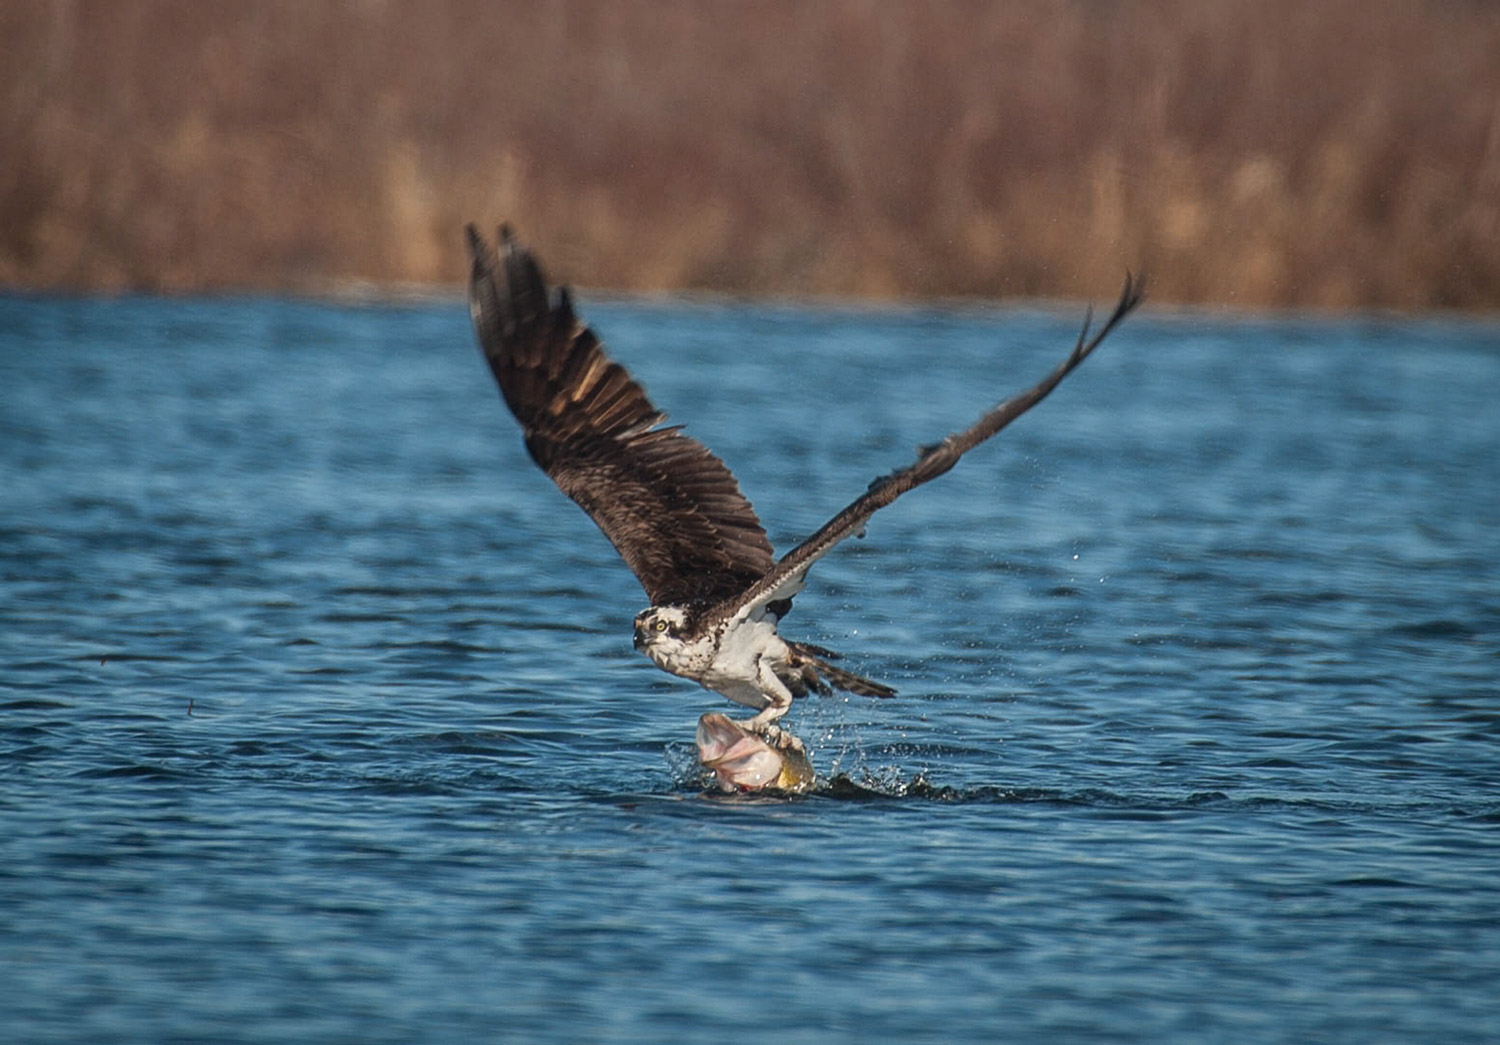 Nature, in all its beauty and savagery, is on display at Messalonskee Lake where an osprey seizes an unsuspecting northern pike that will provide plenty of sustenance. The photo is by Logan Parker, an avid birder and amateur wildlife photographer who serves as community engagement coordinator at the Maine Lakes Resource Center in Belgrade Lakes.